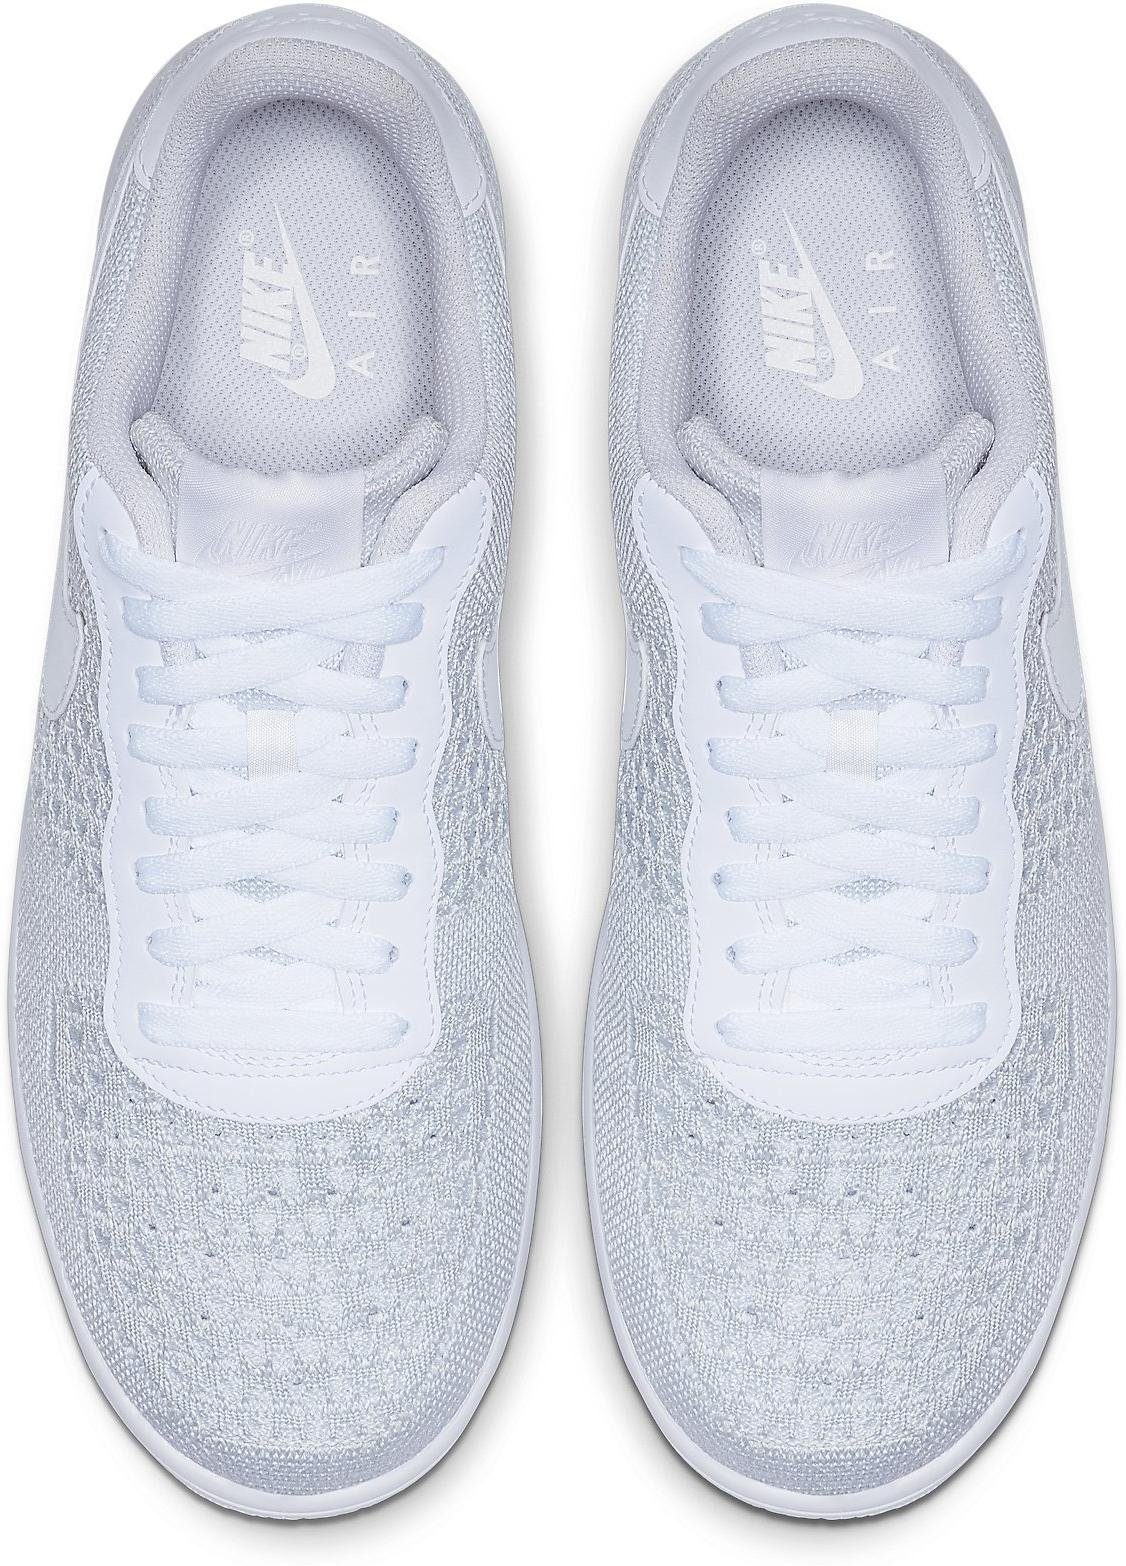 Shoes Nike AIR FORCE 1 FLYKNIT 2.0